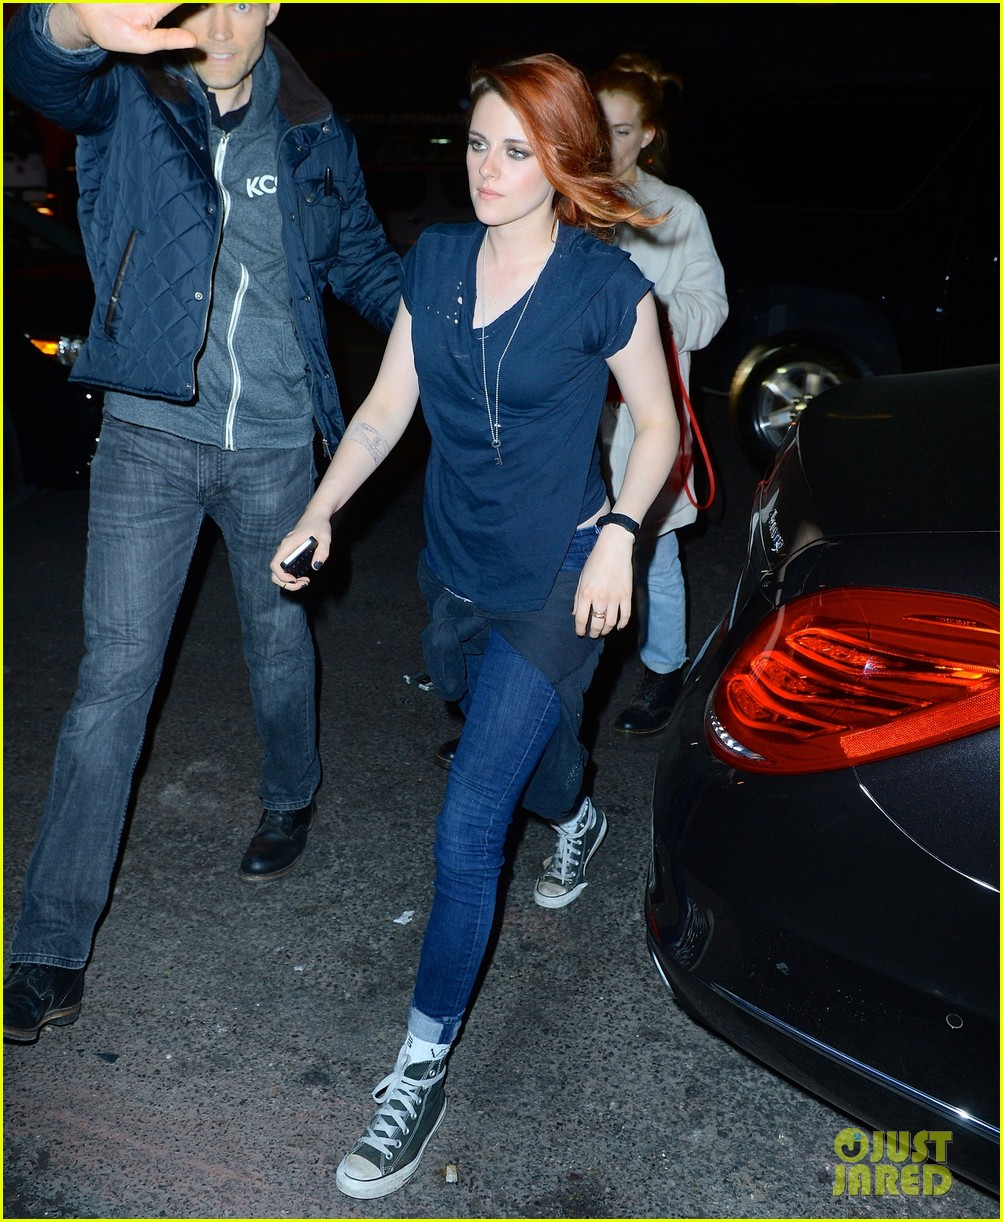 kristen stewart goes casual with riley keough at met ball 2014 after party 023106743